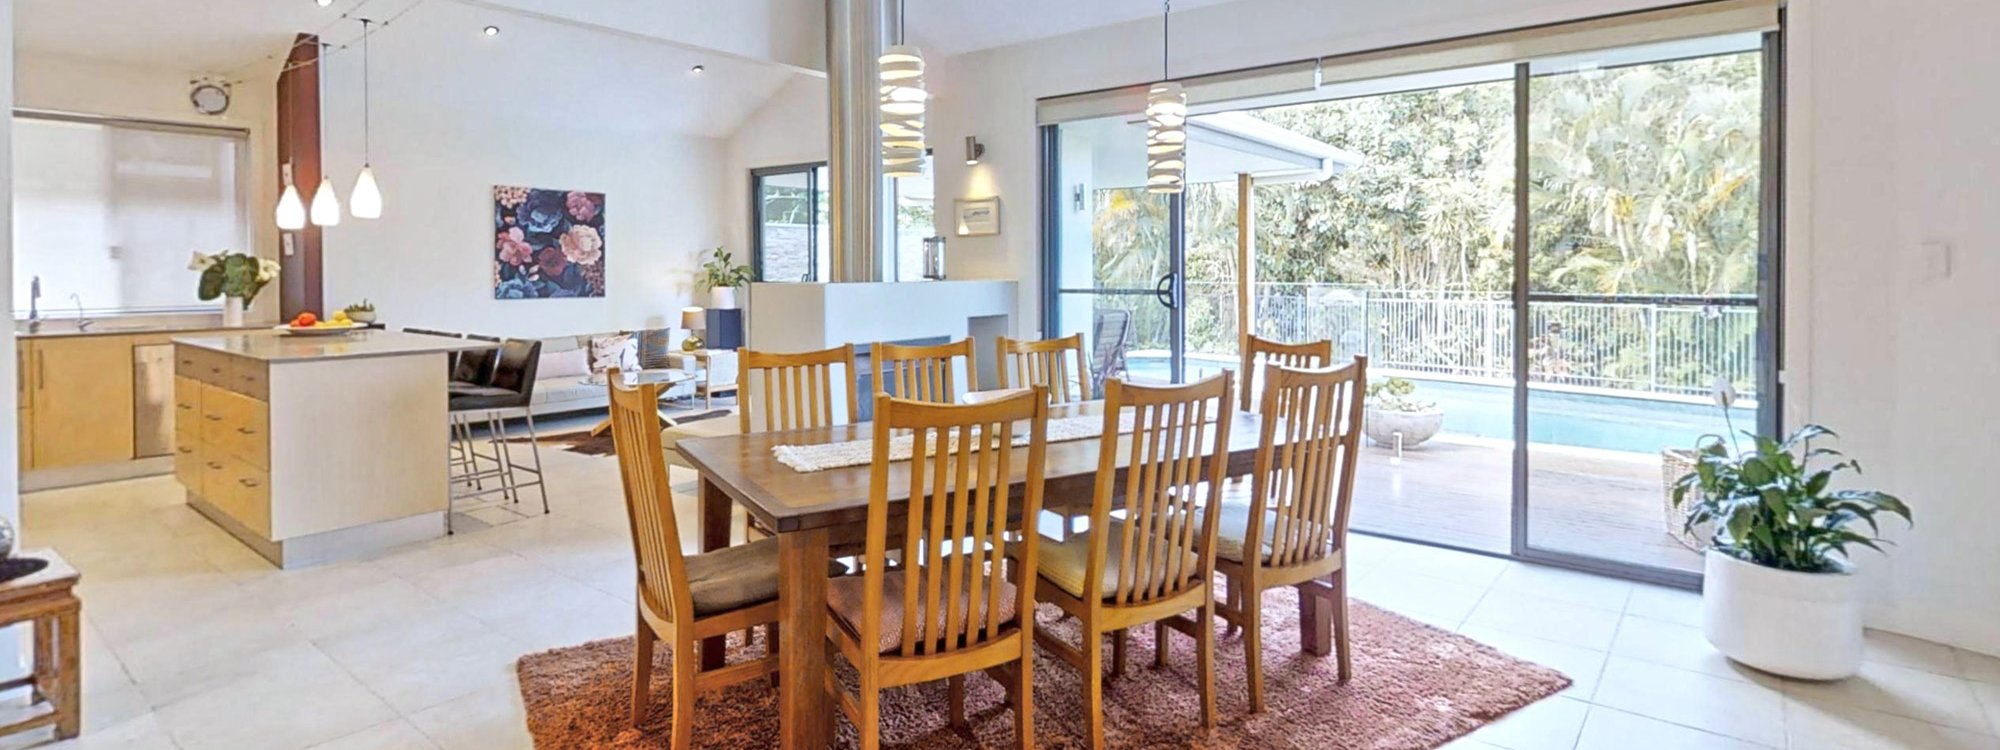 Sunnyside Up - Byron Bay - Dining Area Looking Over to Living Area and Kitchen